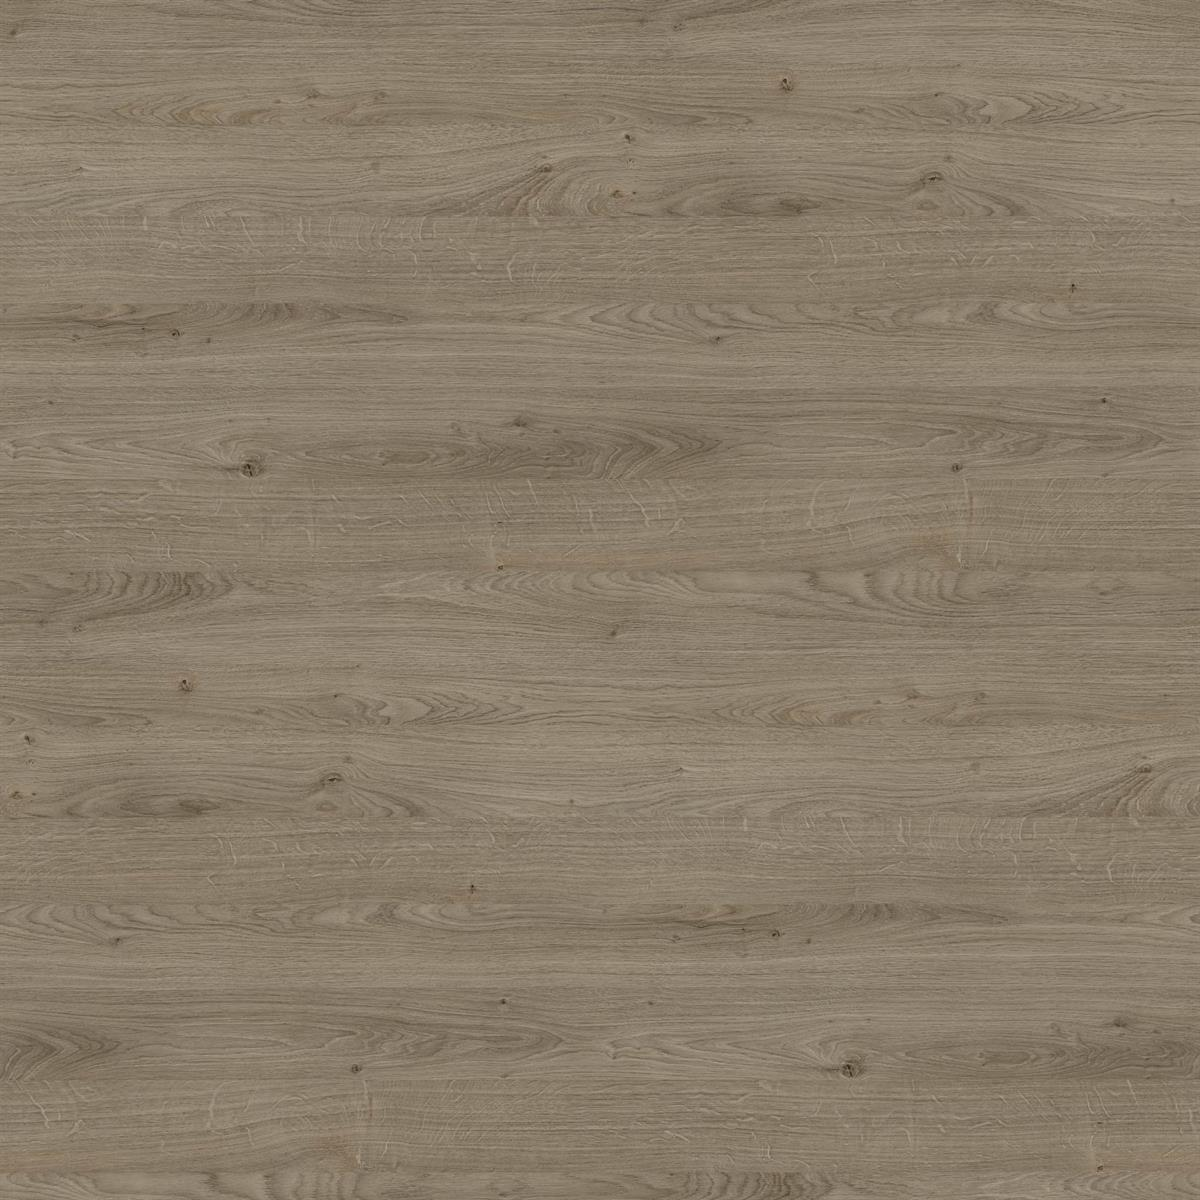 Egger Contemporary Truffle Riverside Oak kitchen worktop sample.